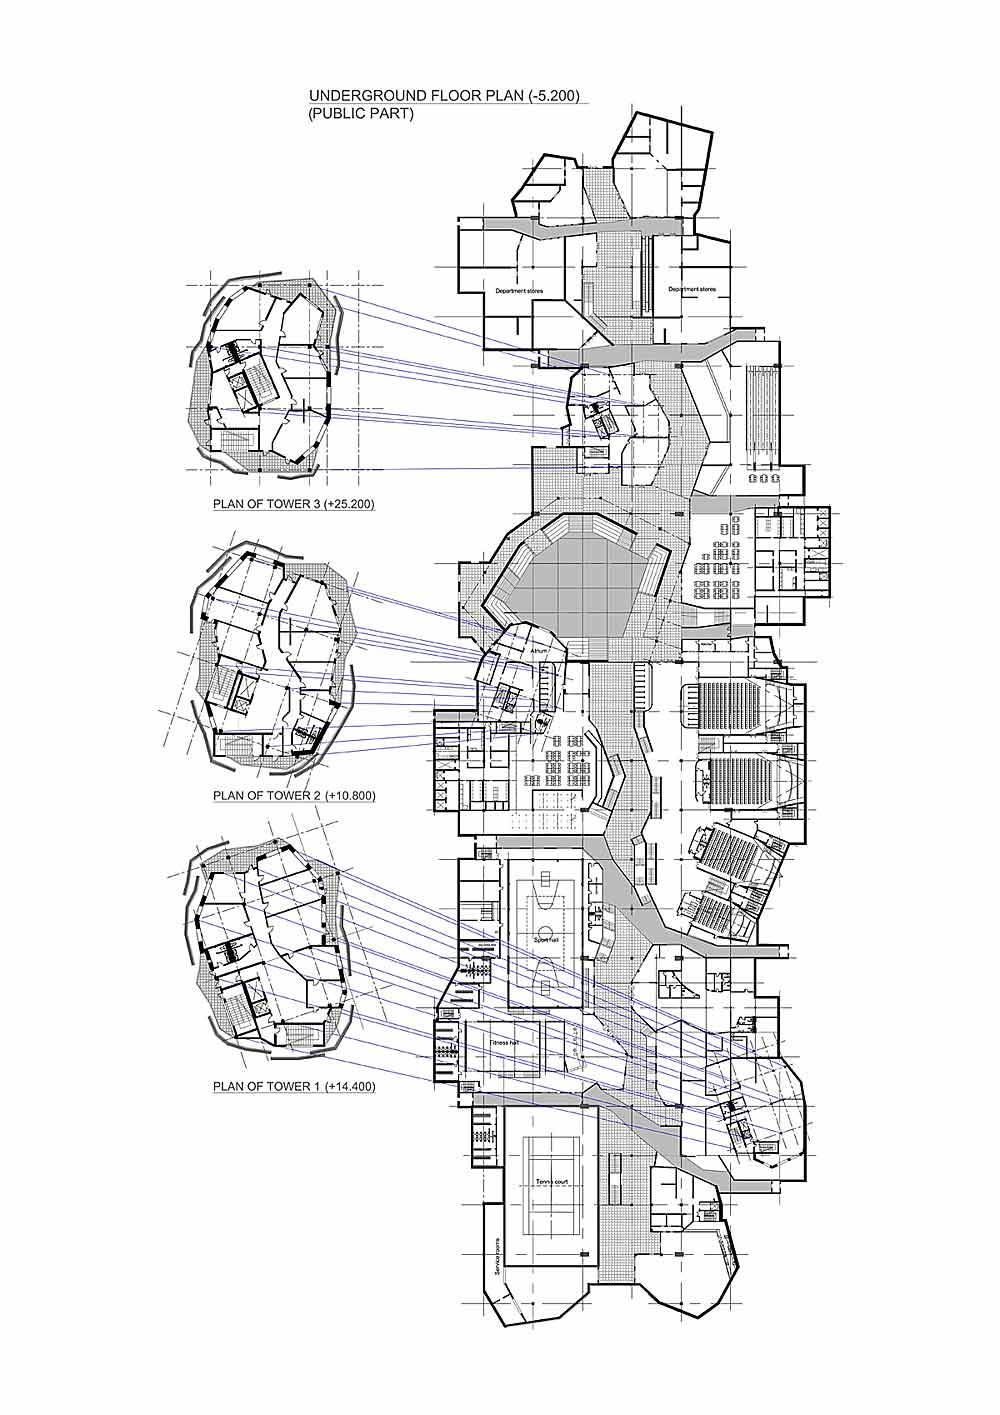 10589 furthermore Camelot Theatre further Earthbagplans wordpress additionally Small House Plans besides Underground Home Plans. on earth home designs floor plans